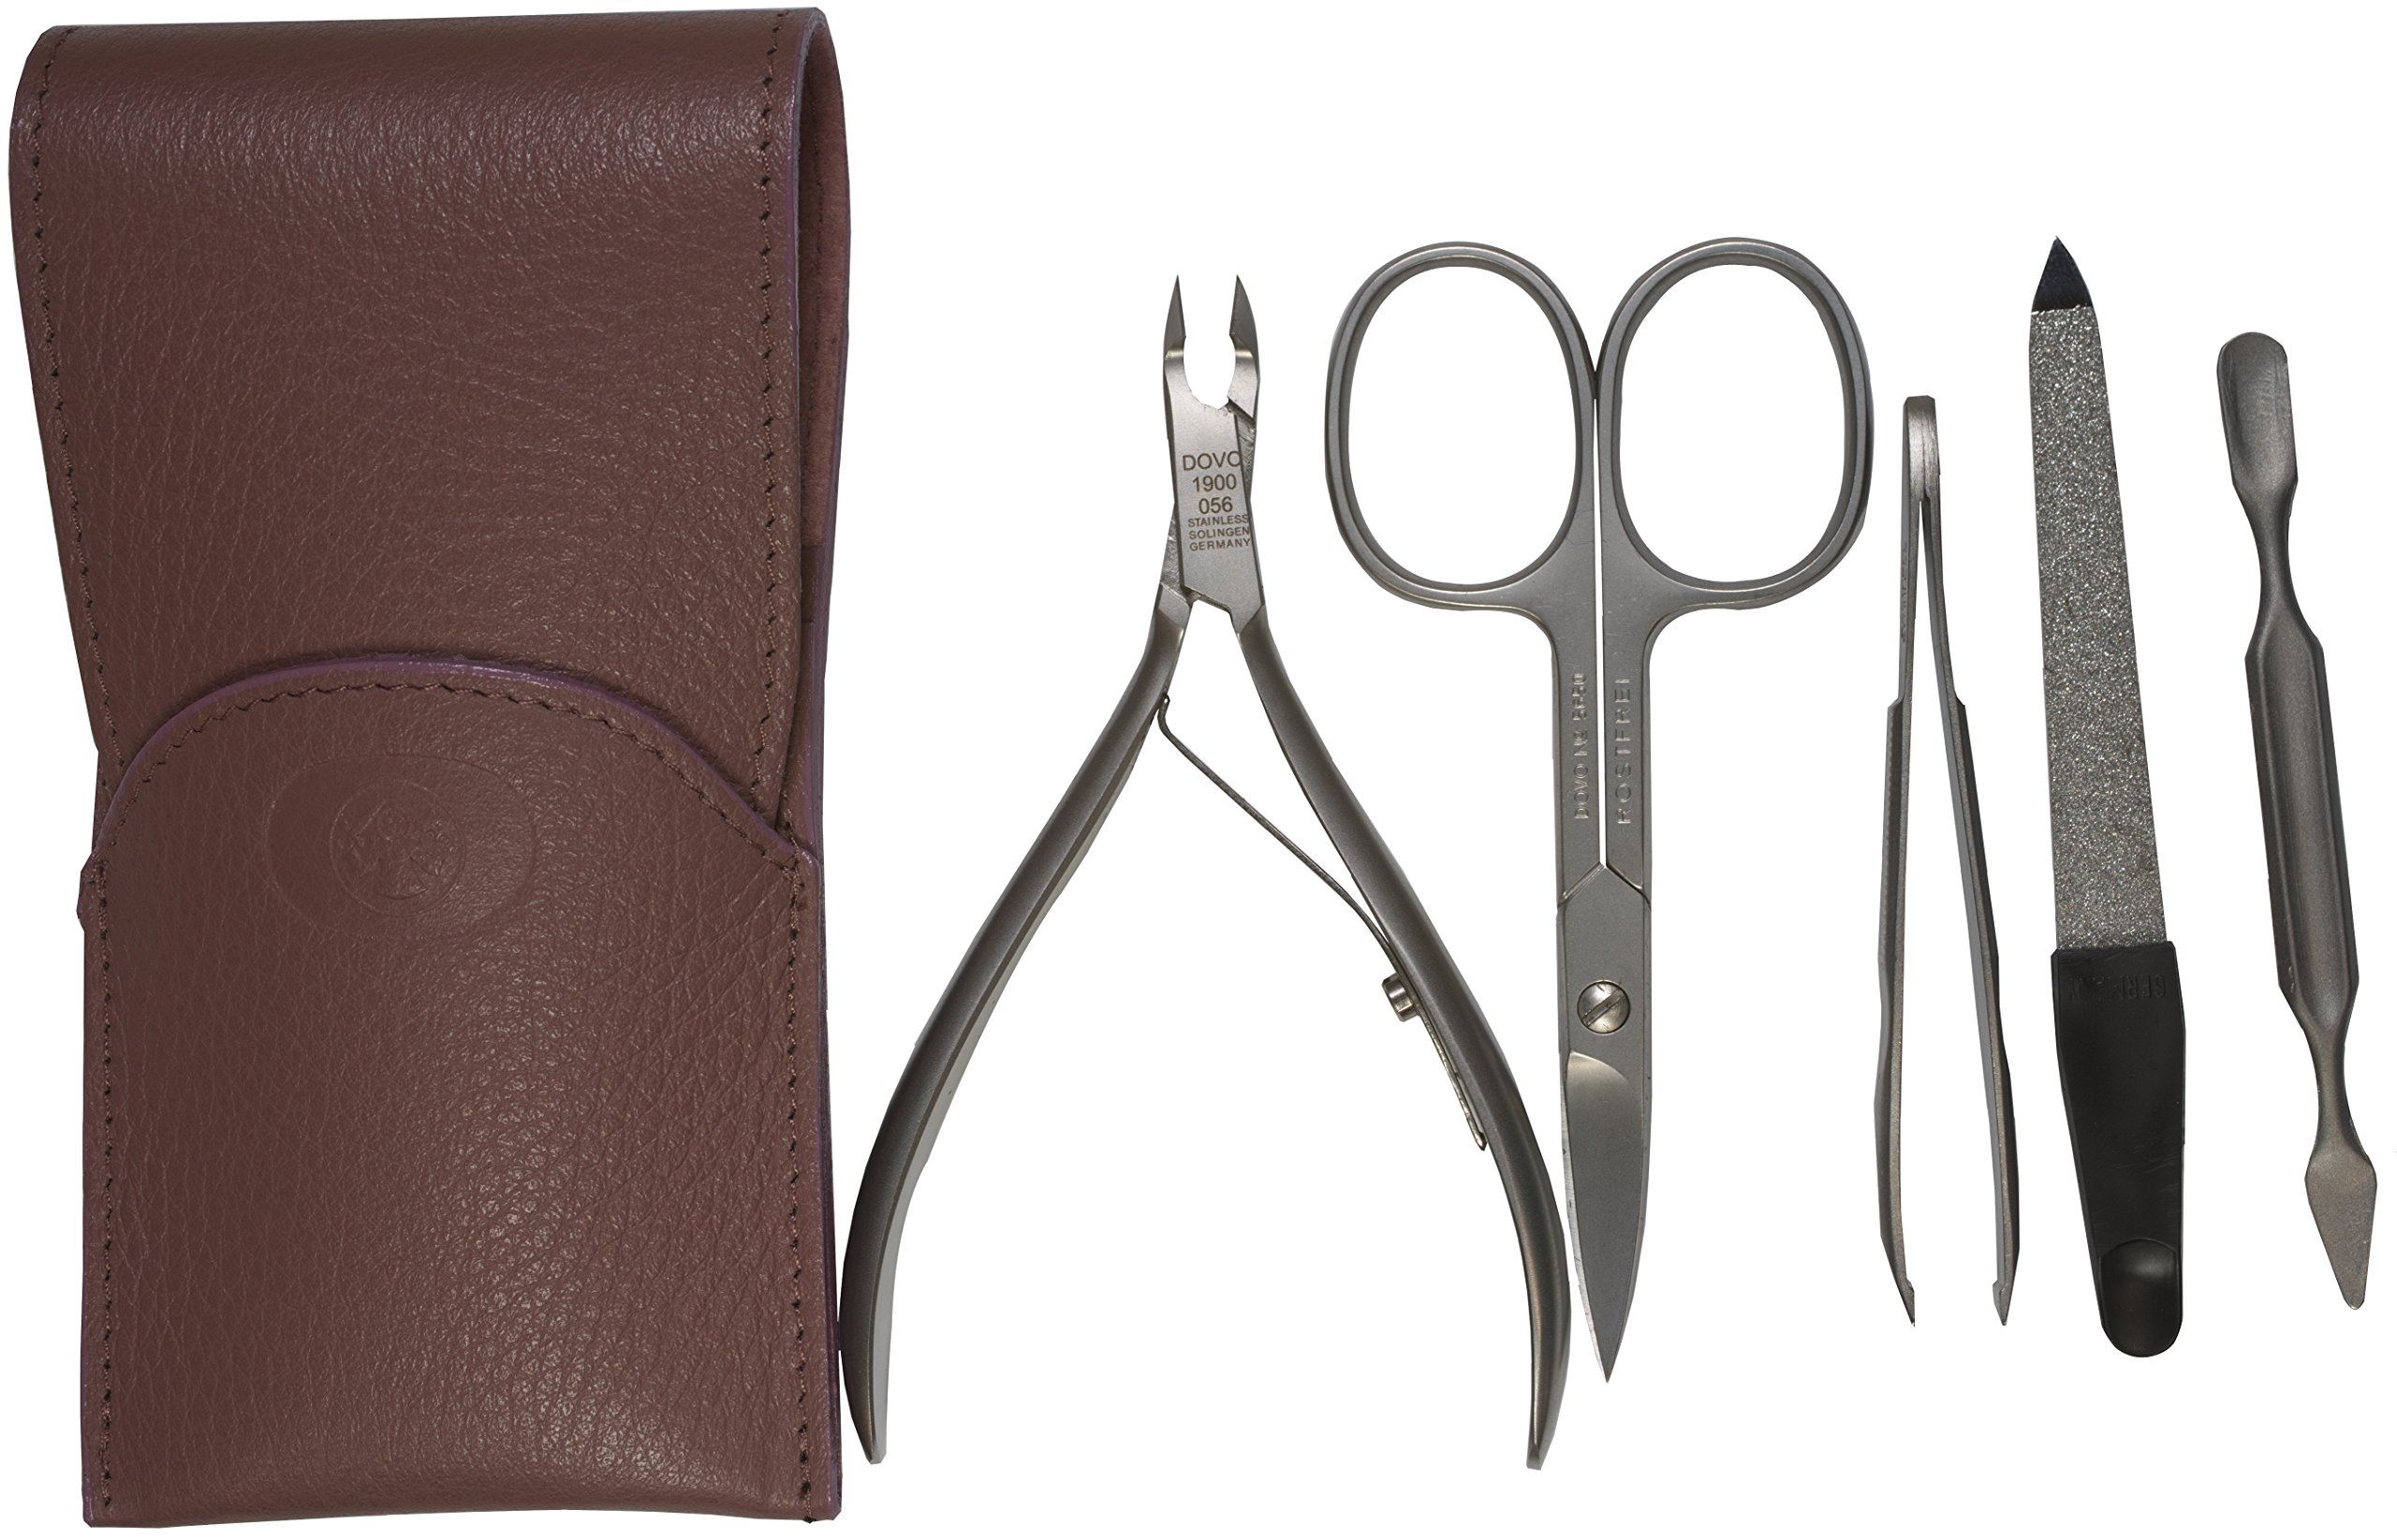 Dovo 5-Piece Stainless Steel Ladies Manicure Set in Lavender Leather Case, Made in Germany